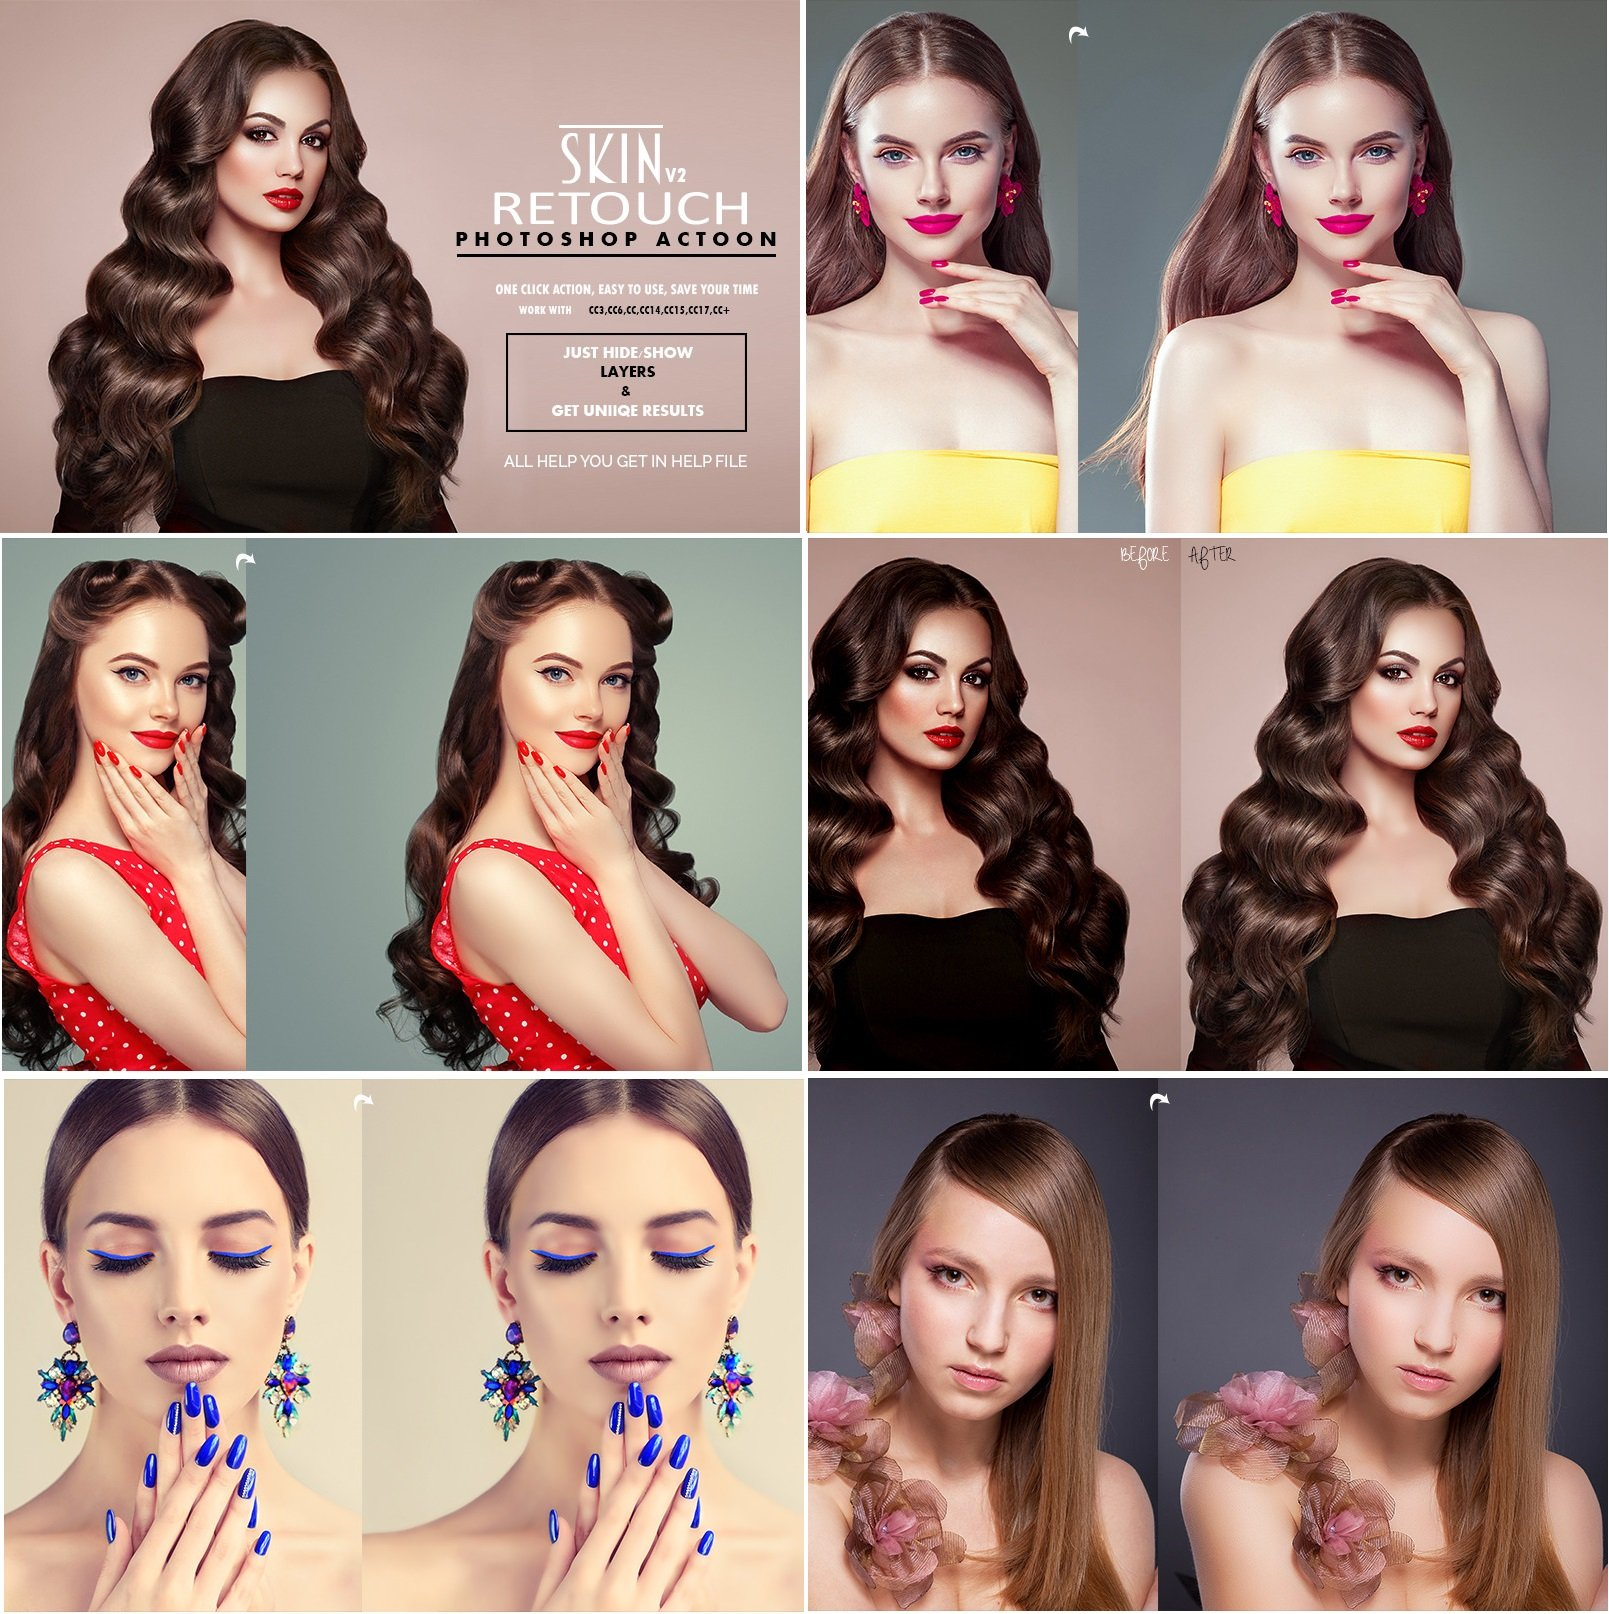 Download Skin Retouch v2 Photoshop Actions 3531363 - SoftArchive